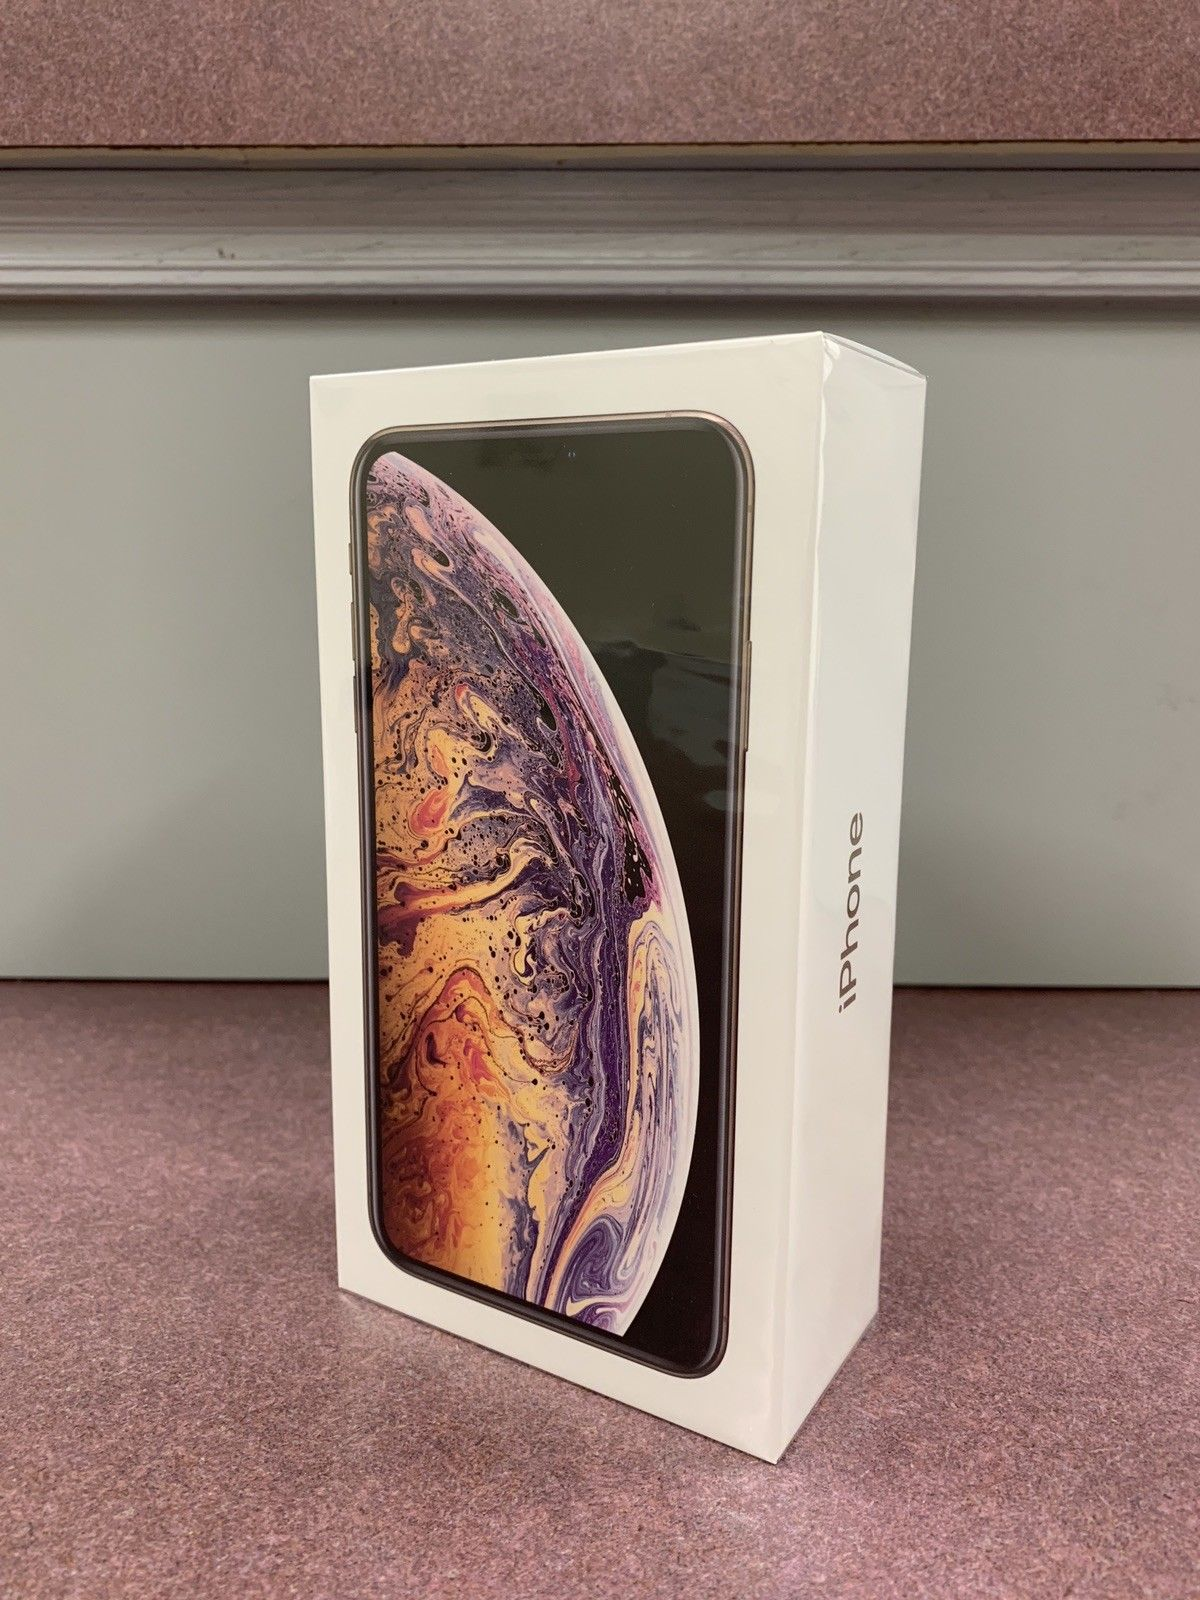 Apple iPhone Xs Max/Samsung Galaxy Note 9 Unlocked